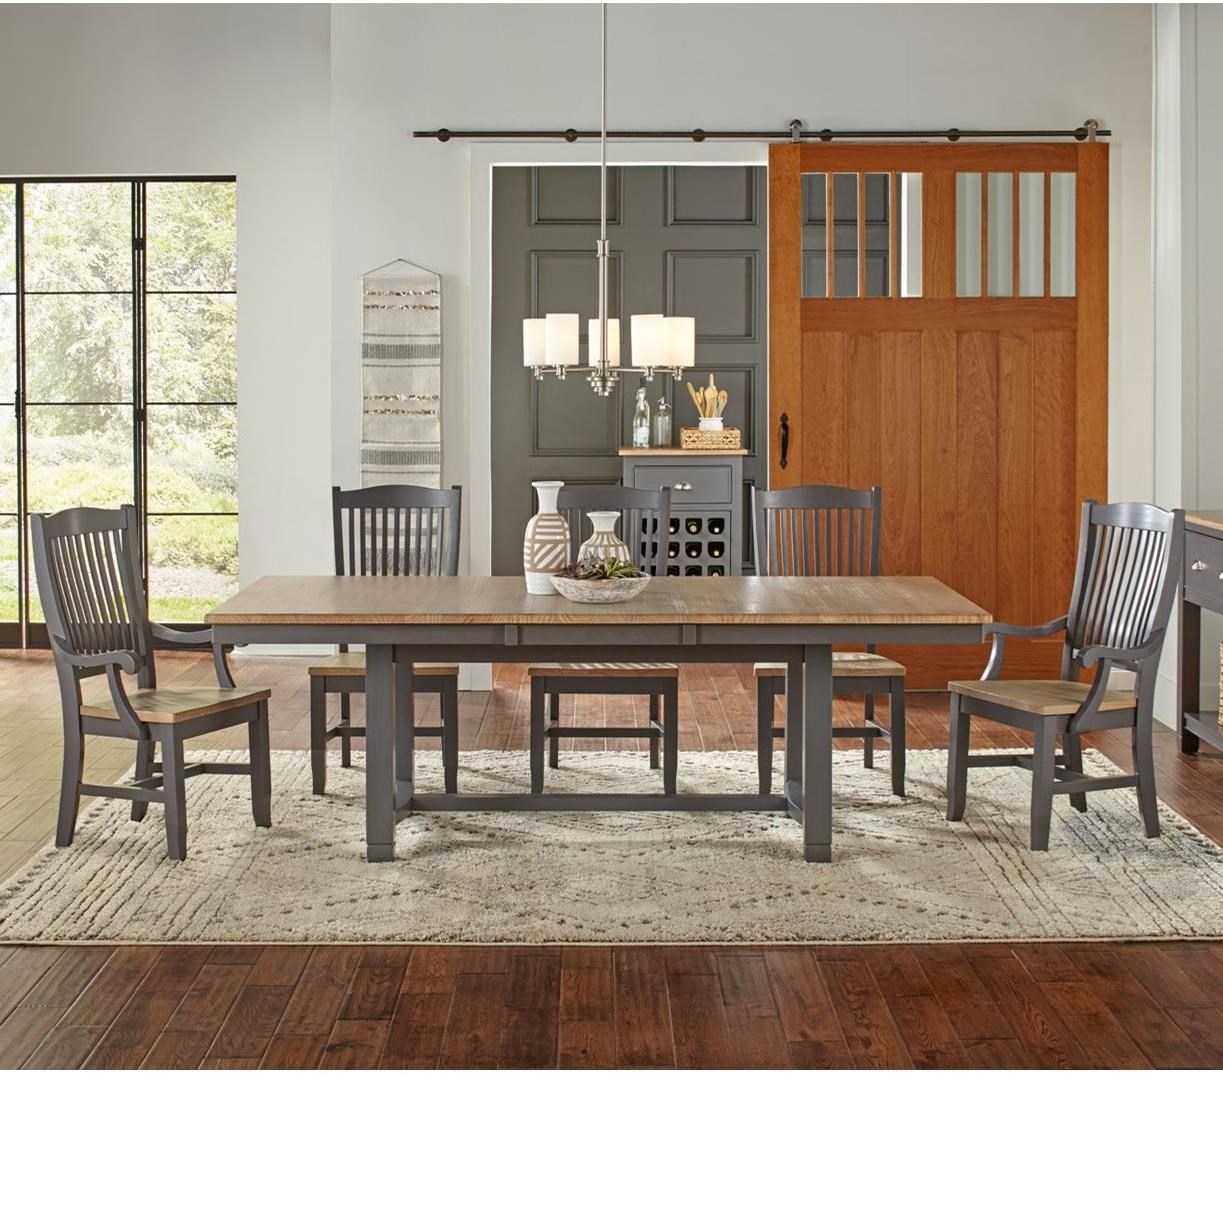 Port Townsend 6 Pc Table Set by AAmerica at Johnny Janosik